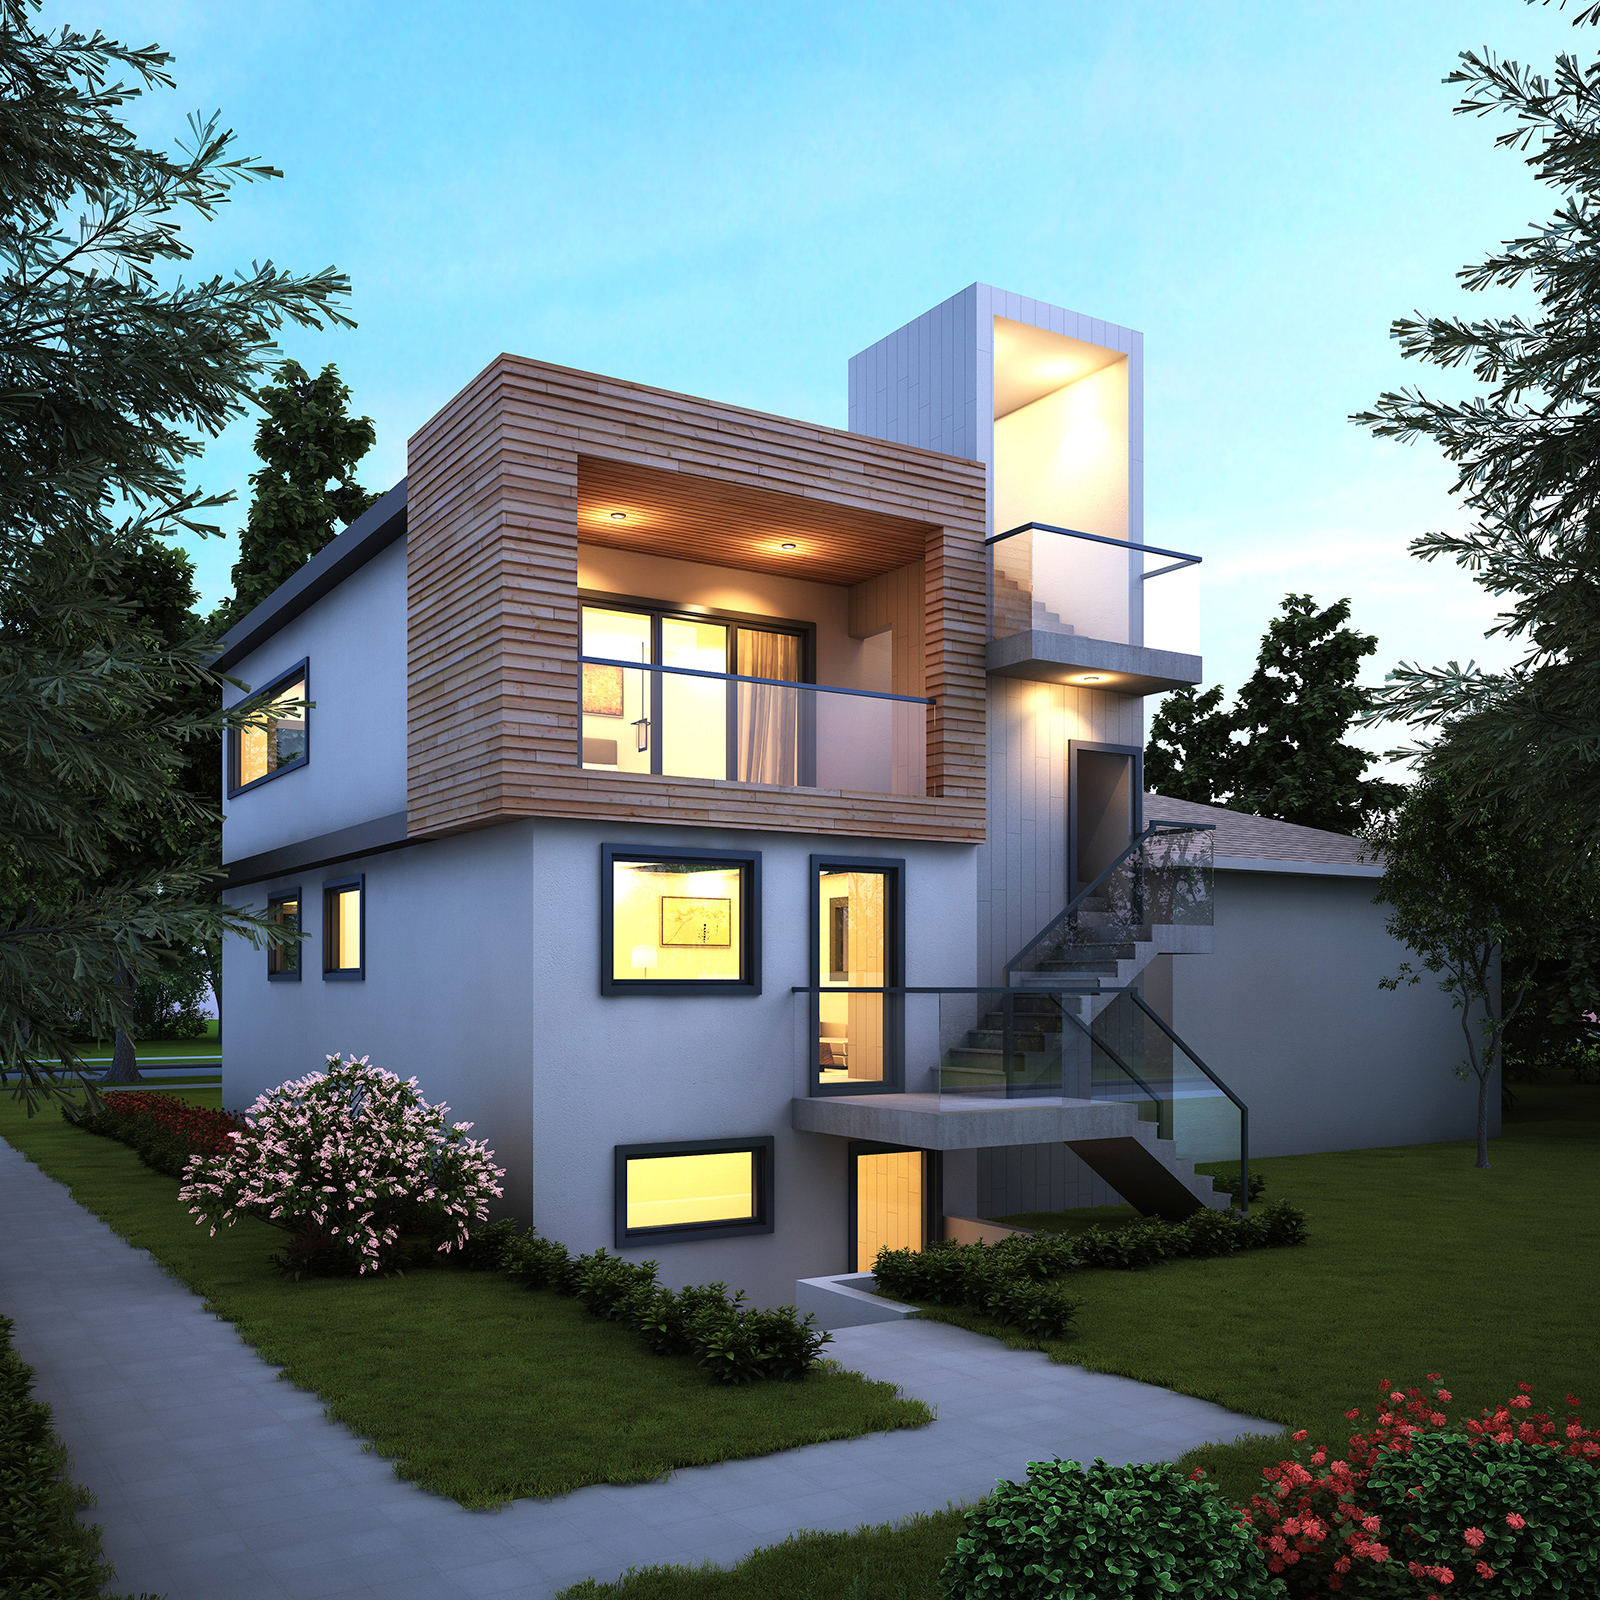 Home Design Ideas Architecture: Passive House Consulting